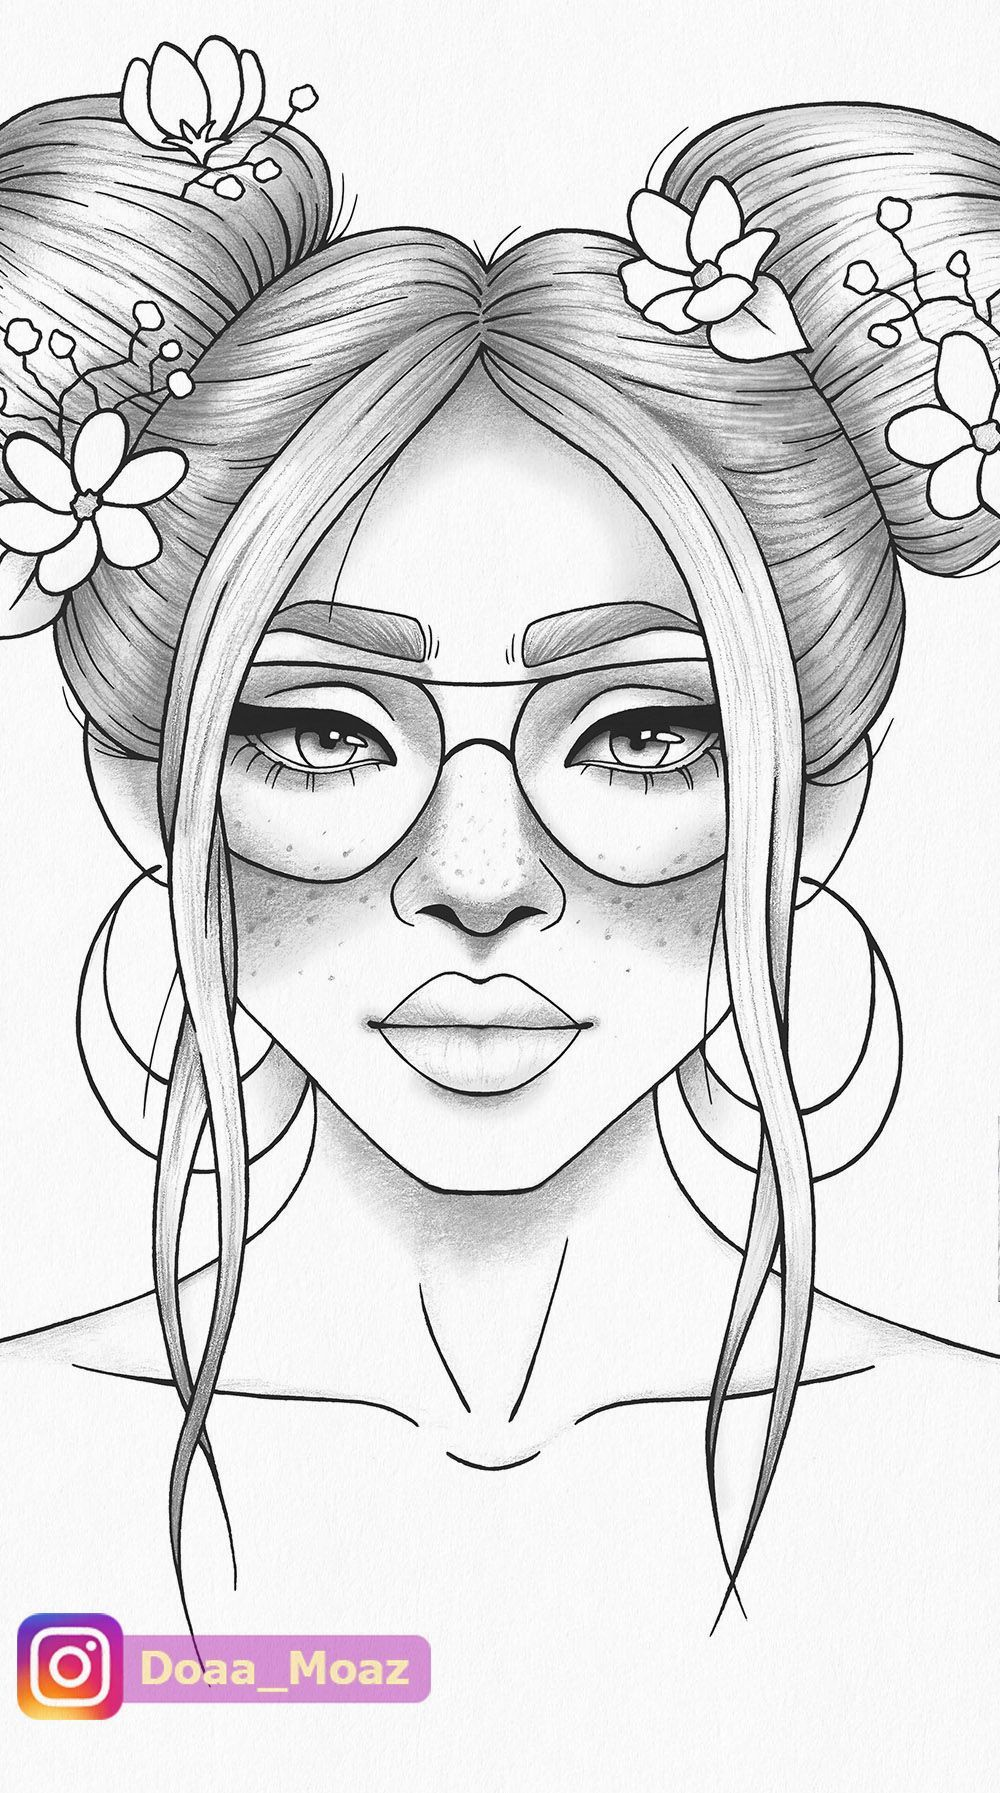 Gallery Printable coloring page girl portrait and clothes colouring sheet floral pdf adult anti stress relaxing zentangle line art is free HD wallpaper.